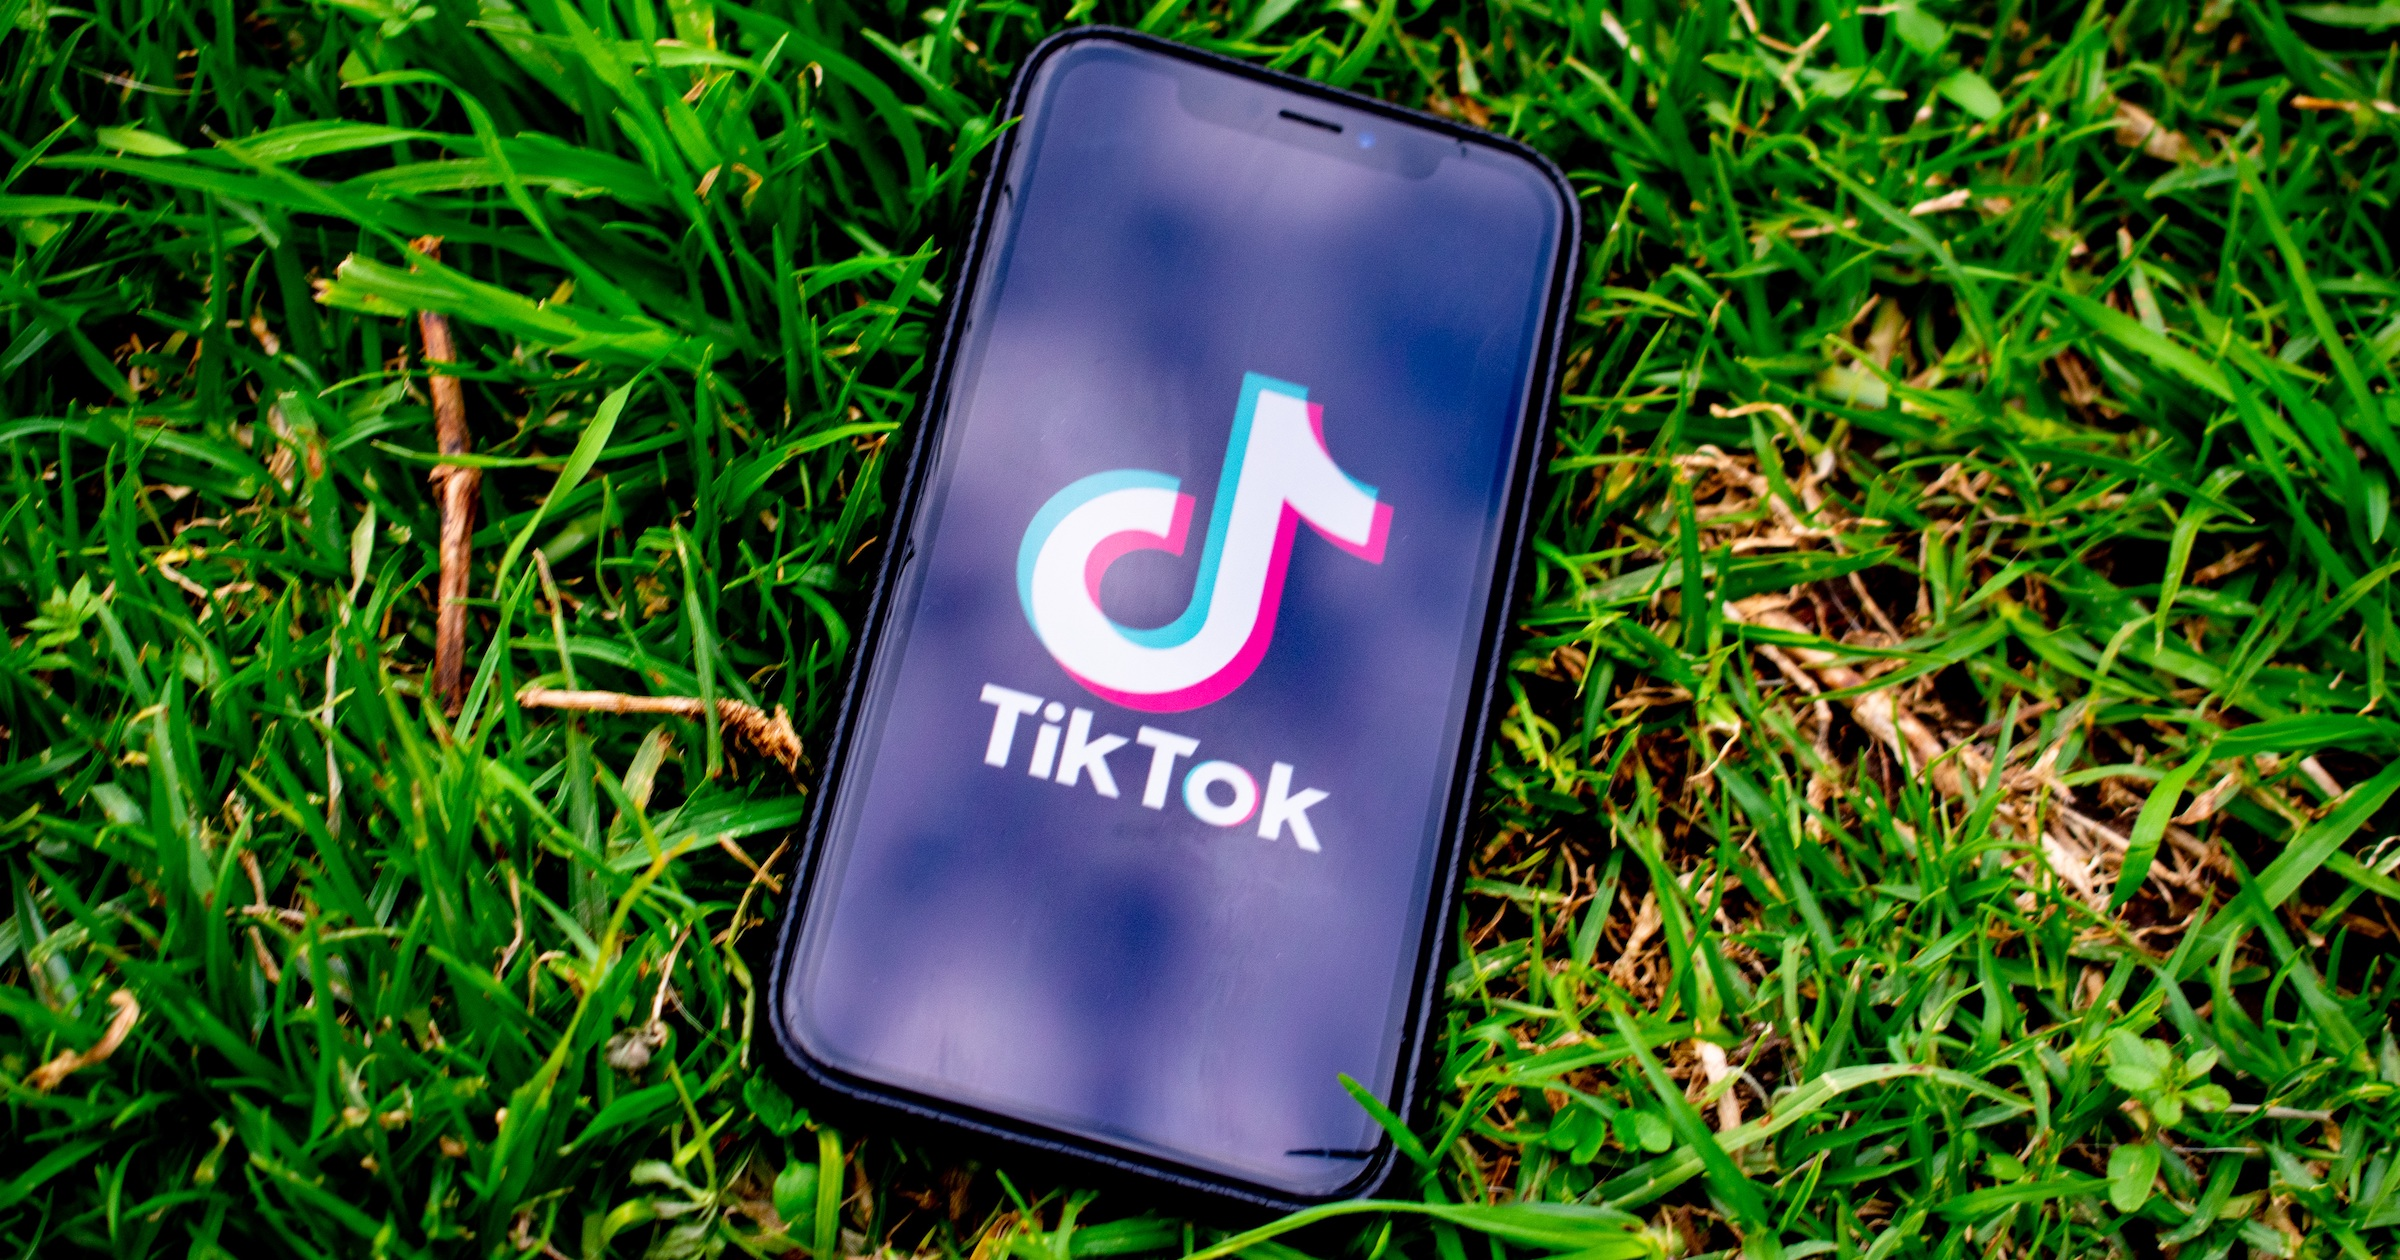 Explained | China's counter-response might block the sale of ByteDance's TikTok